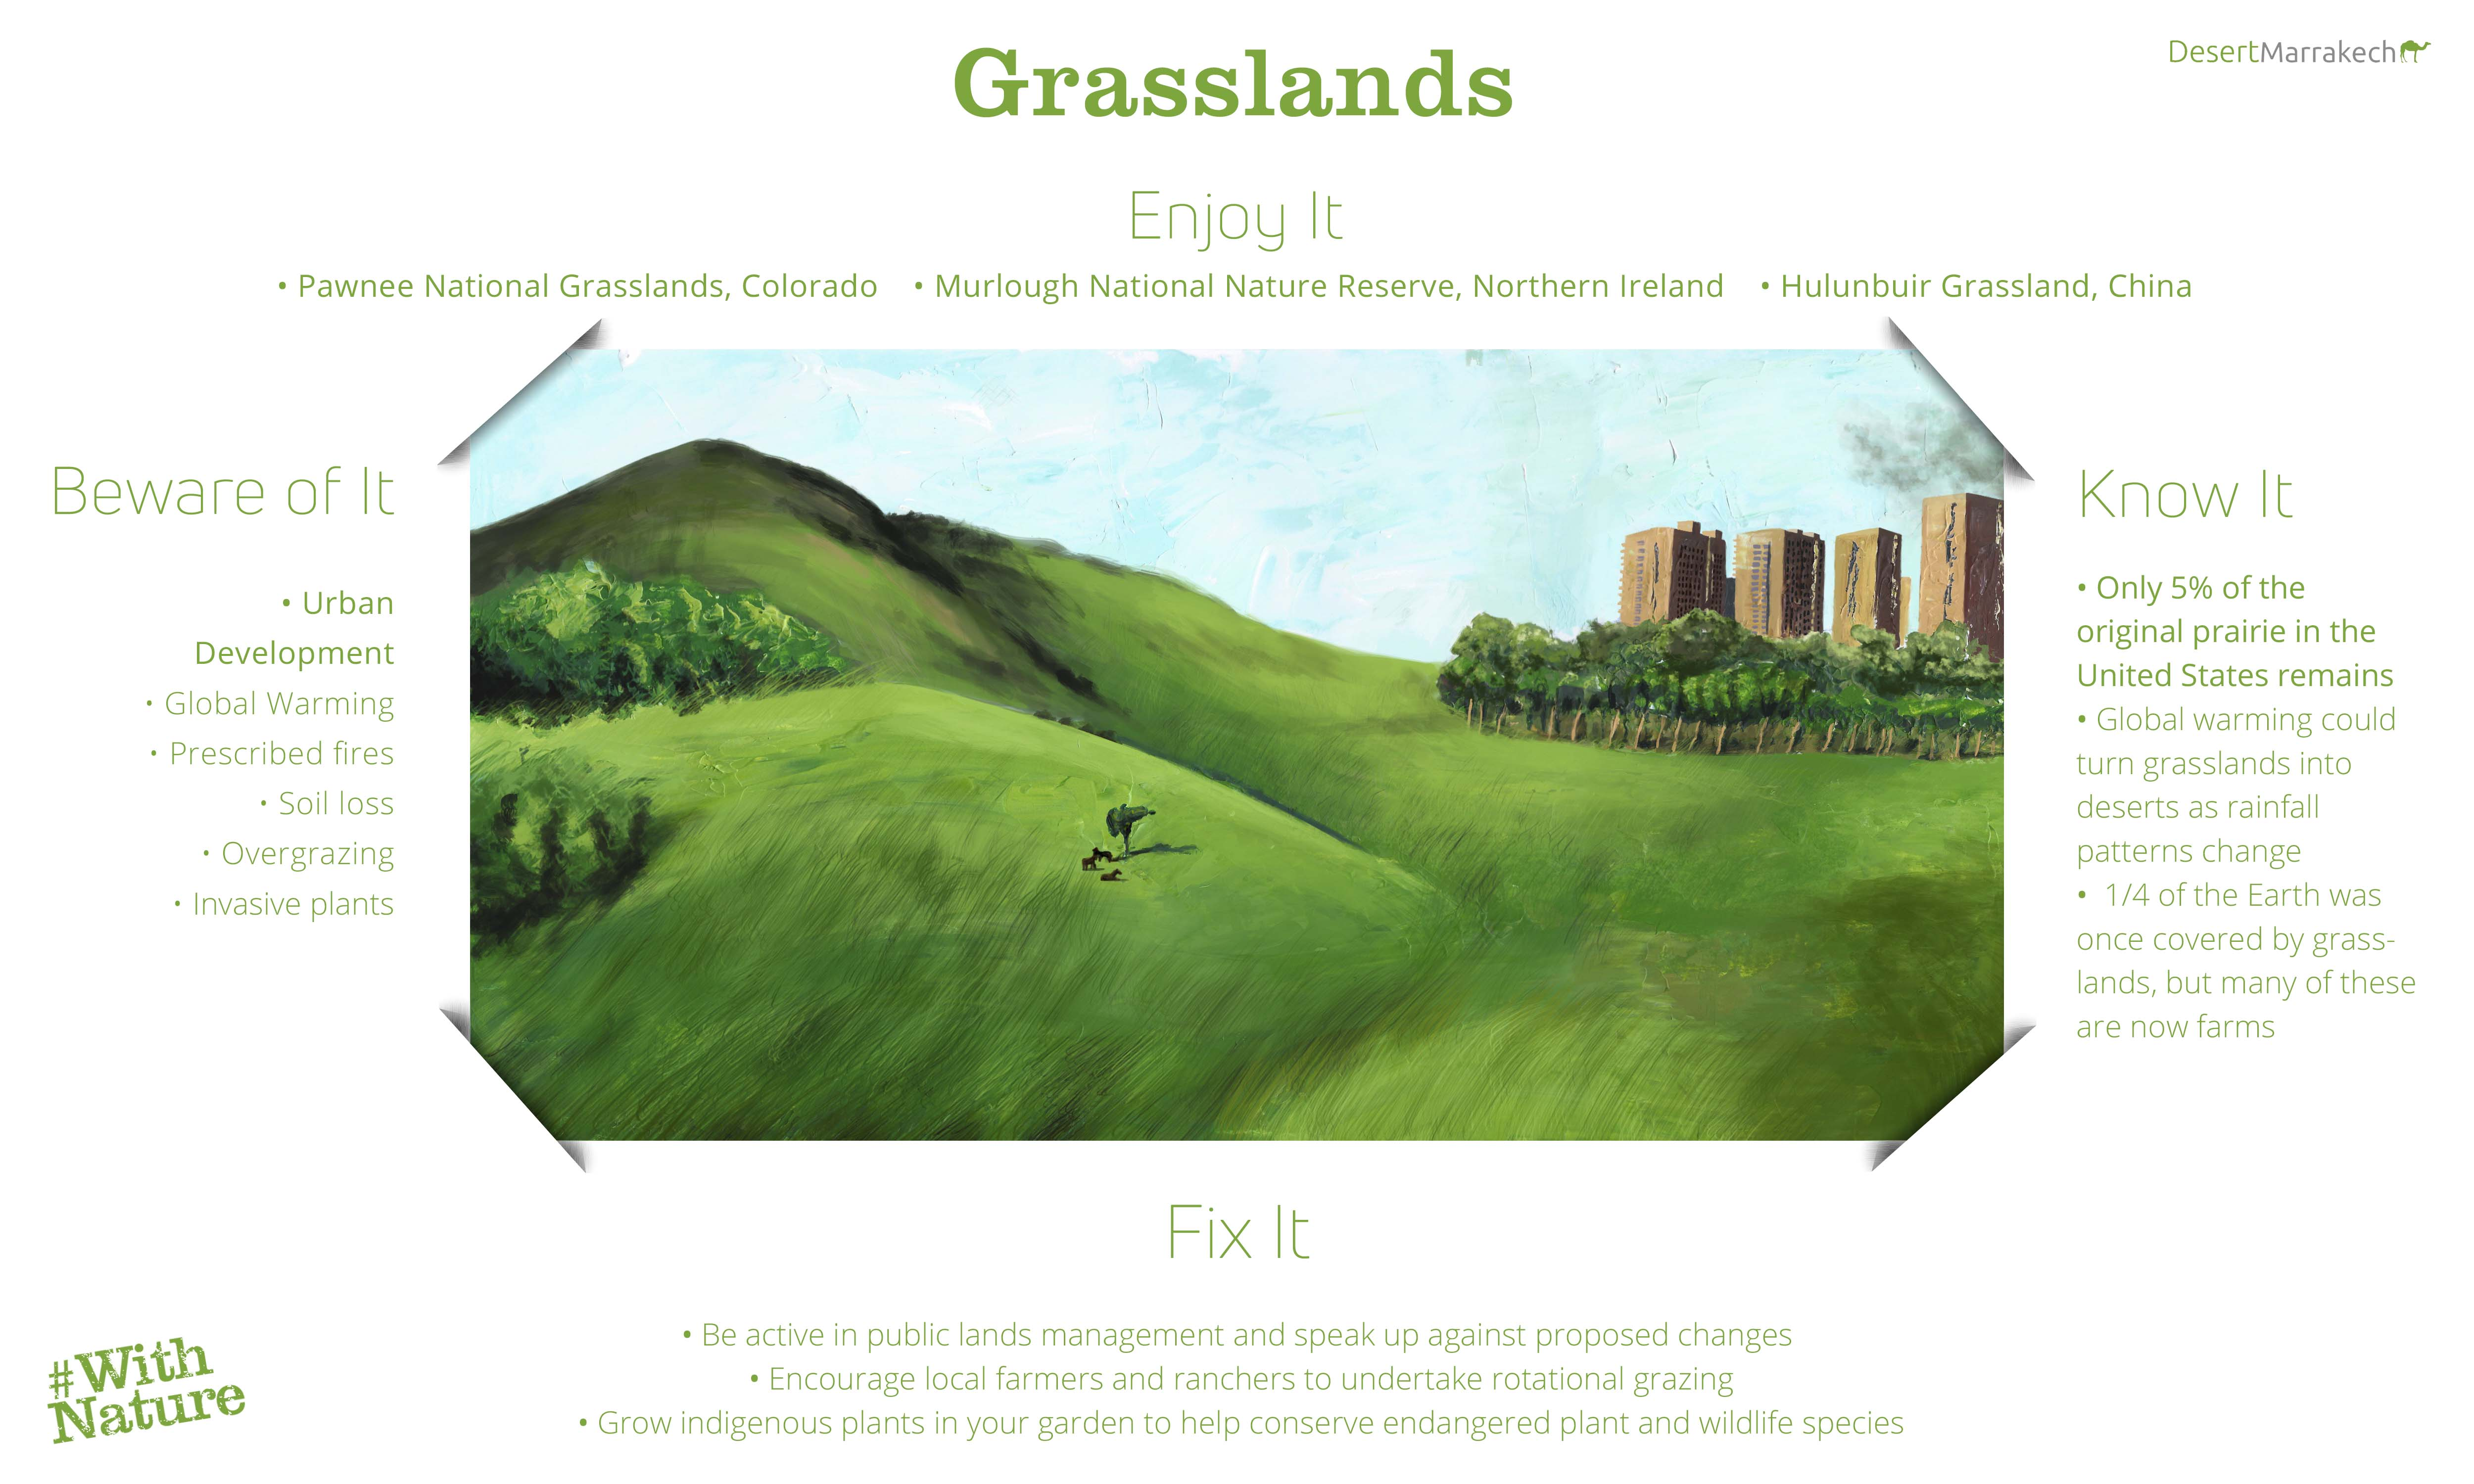 World Environment Day Grasslands Infographic